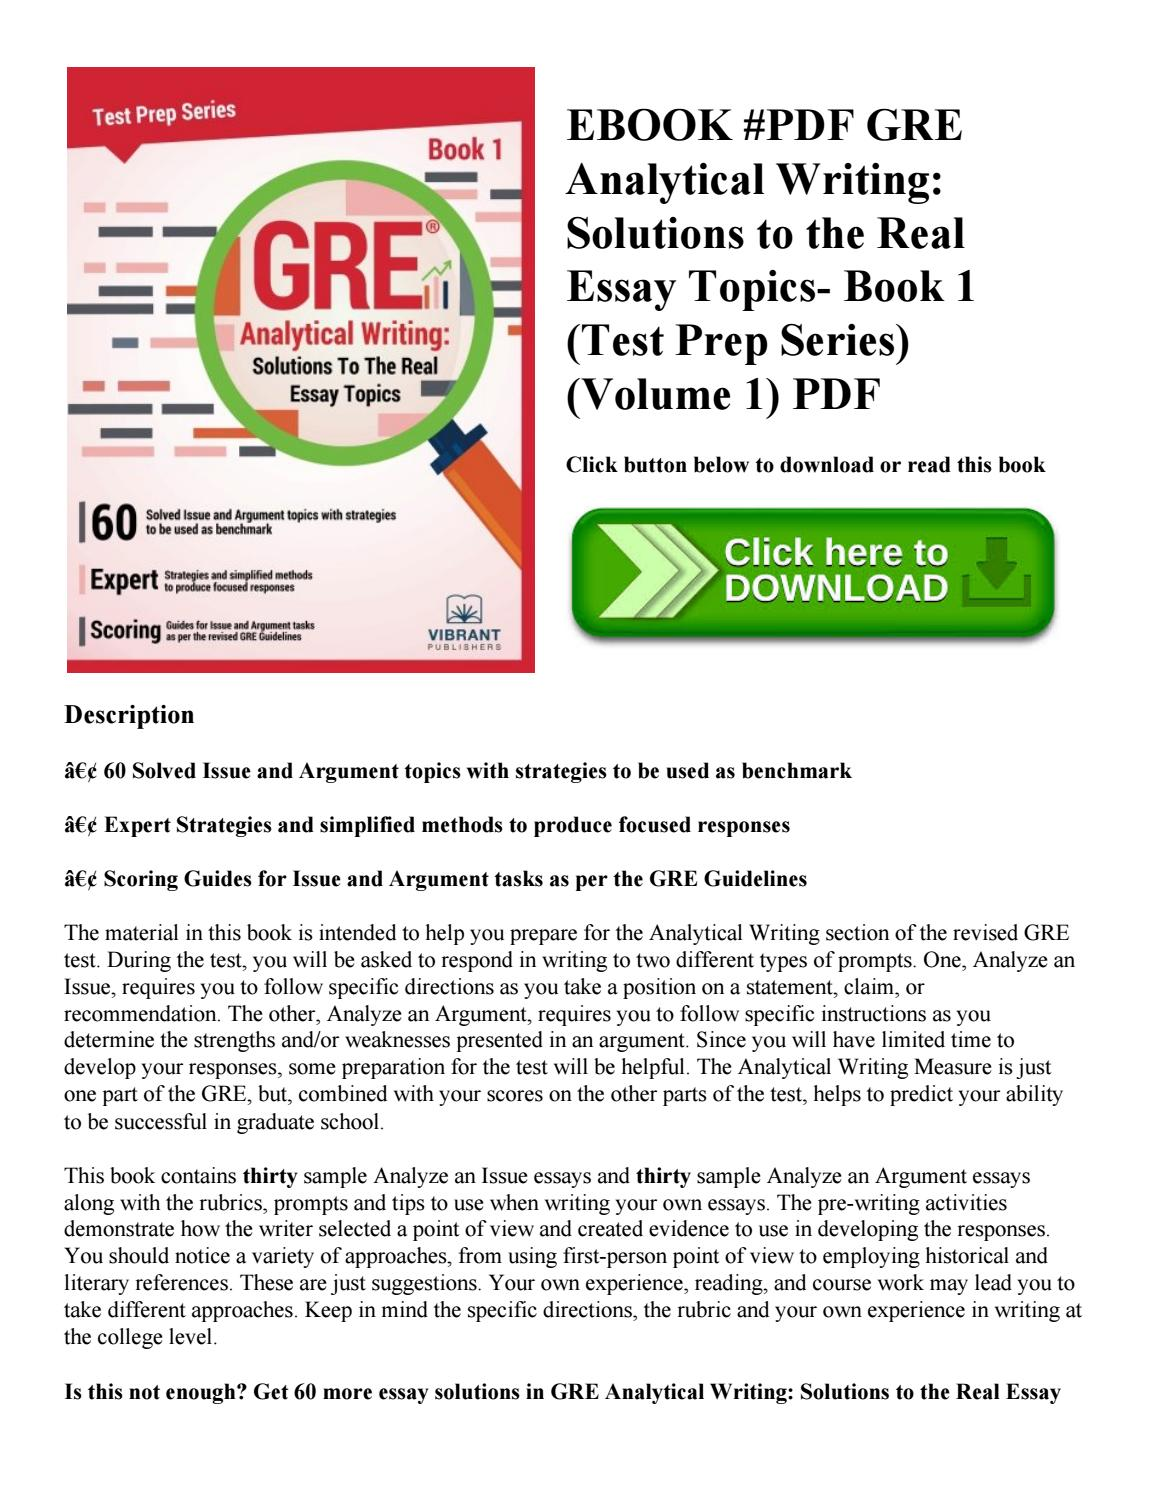 005 Essay Example Gre Book Pdf Page 1 Incredible Analytical Writing Full